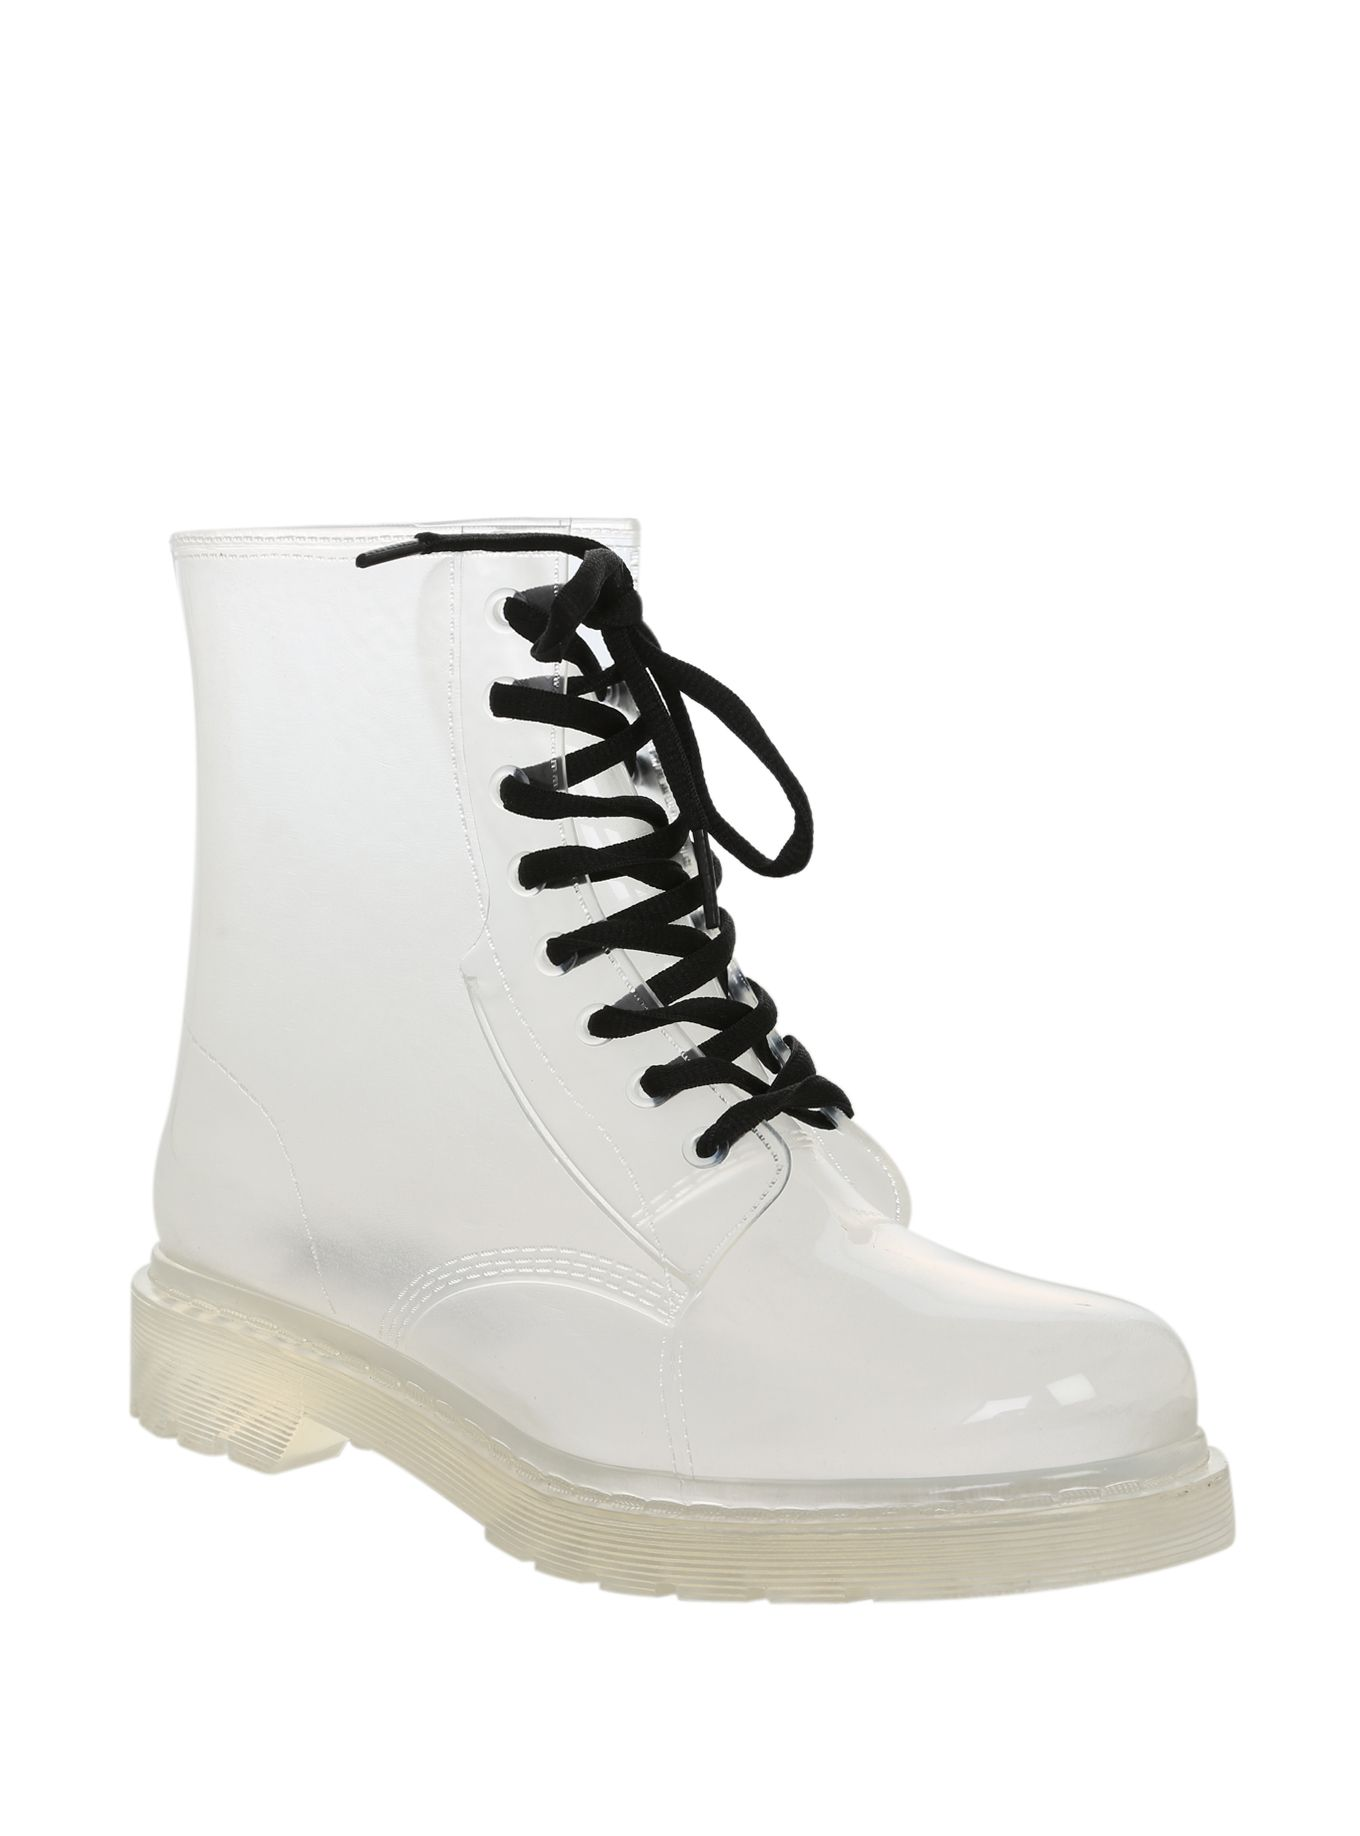 Clear Jelly Doc Martens | xuqnef l 610x610 shorts clear